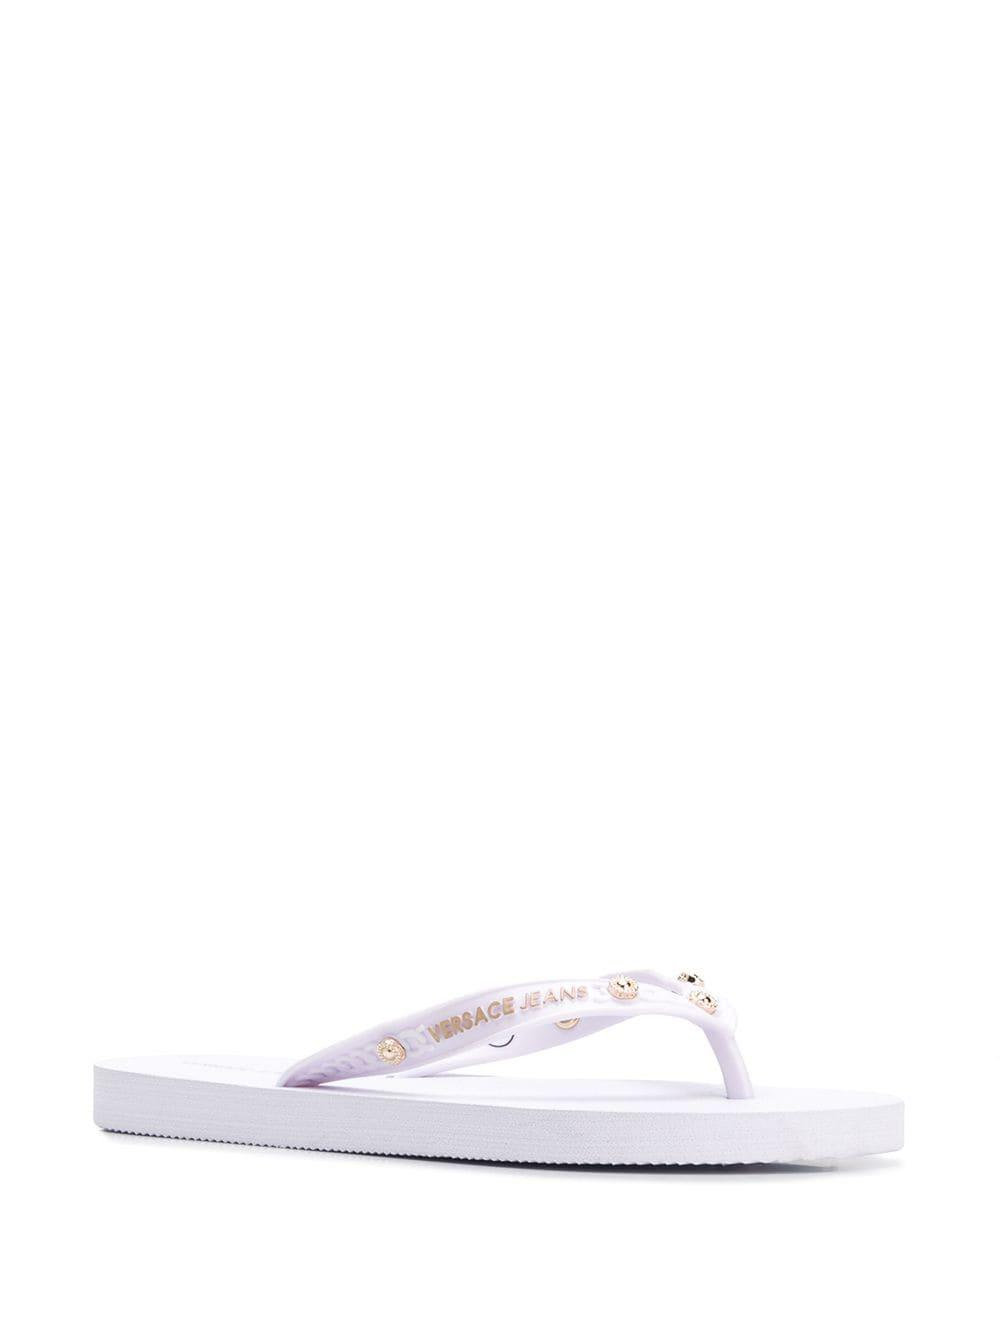 6c8805d71 Lyst - Versace Jeans Studded Flip Flops in White